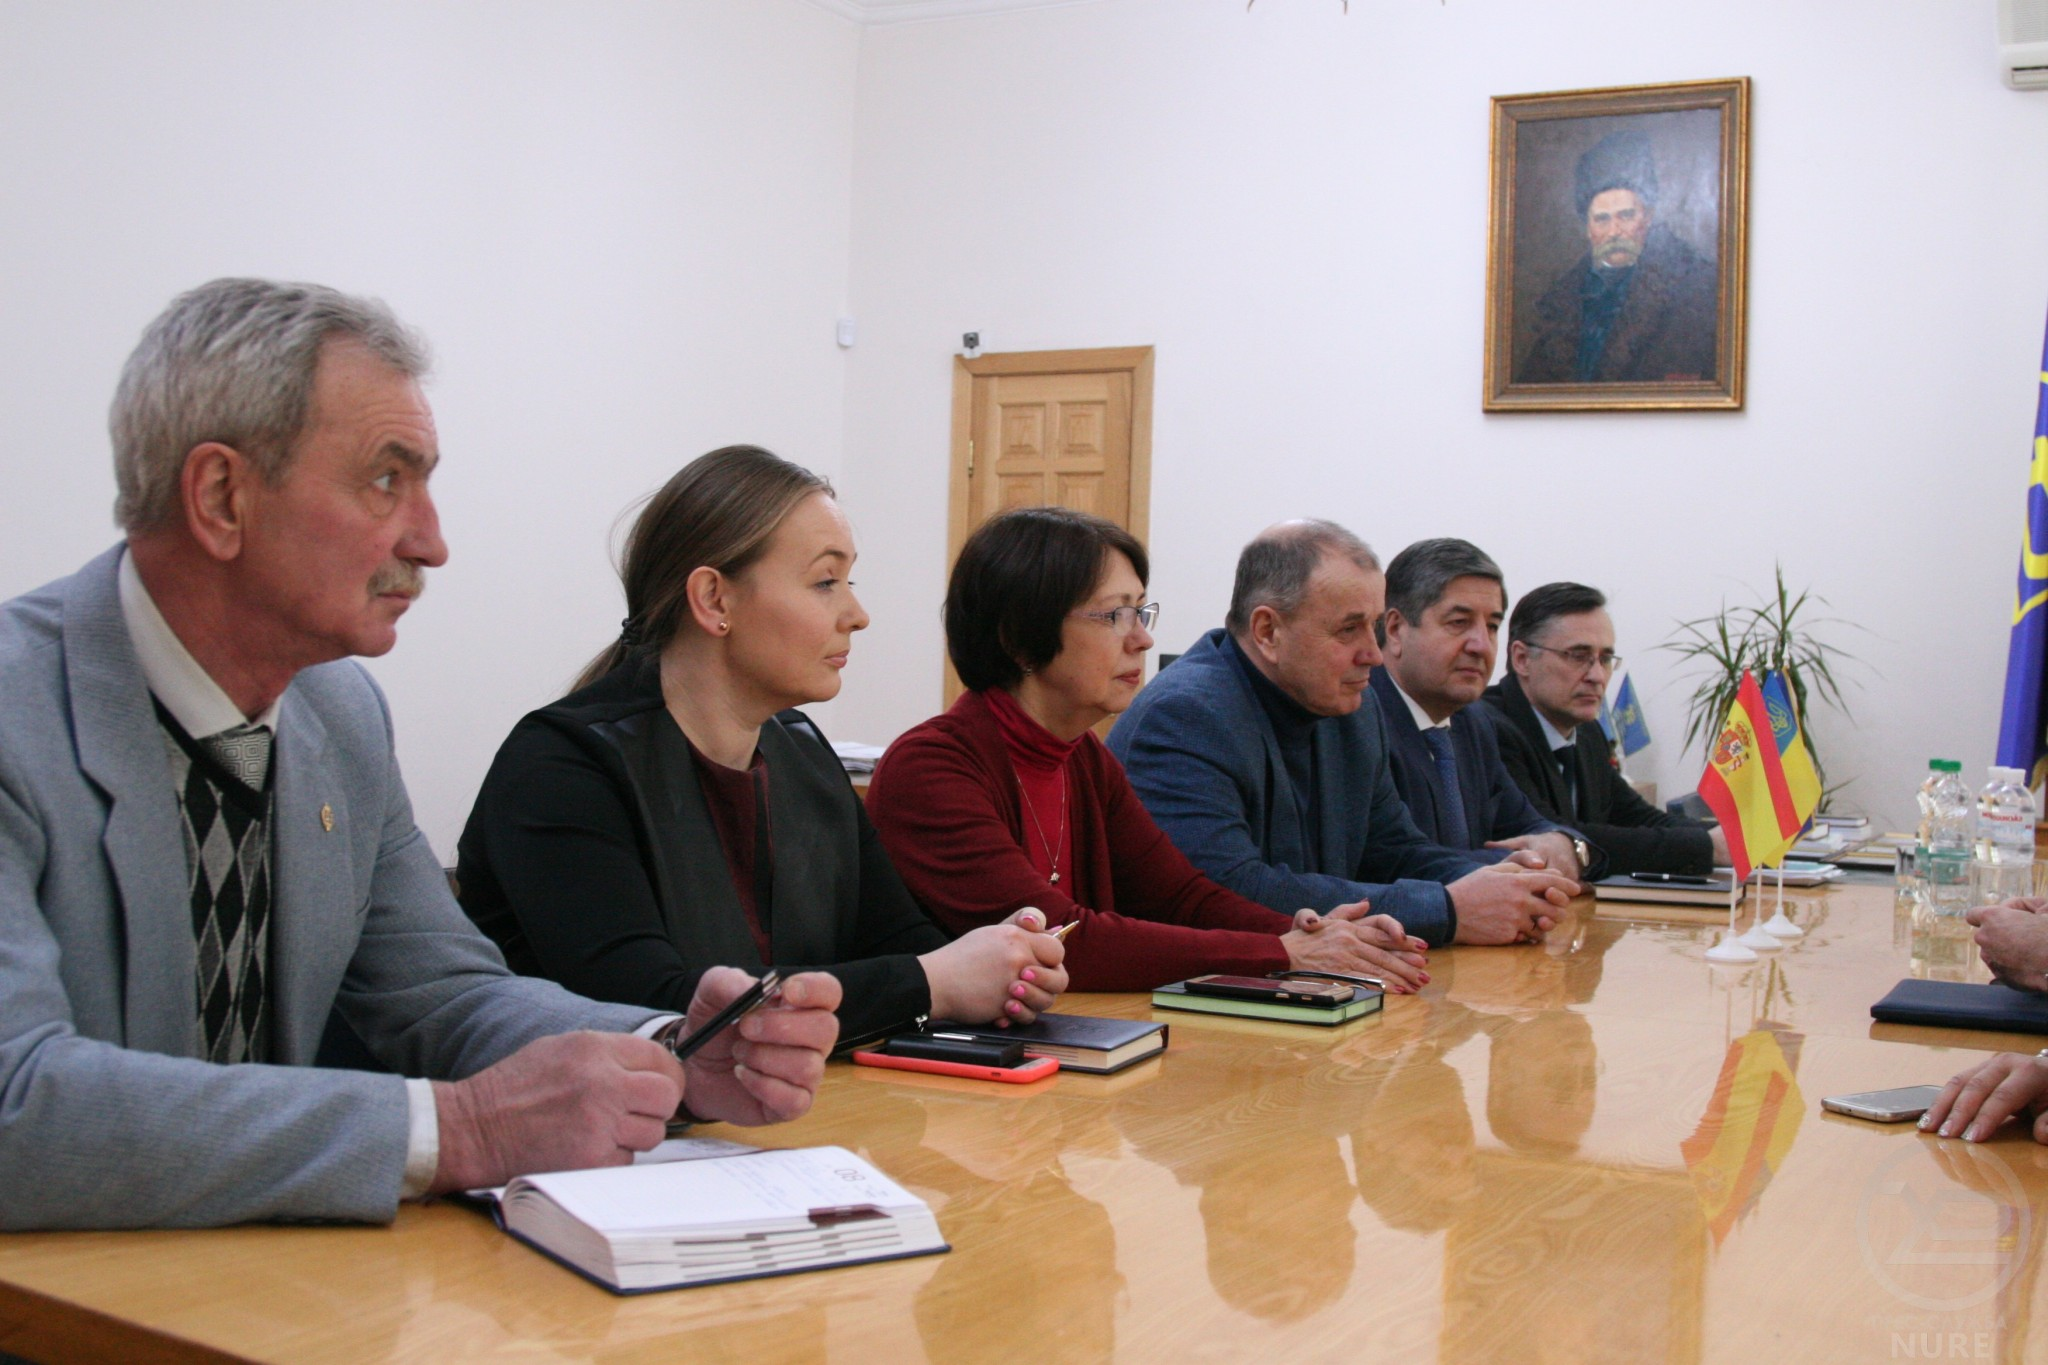 University of Valladolid will collaborate with NURE   NURE